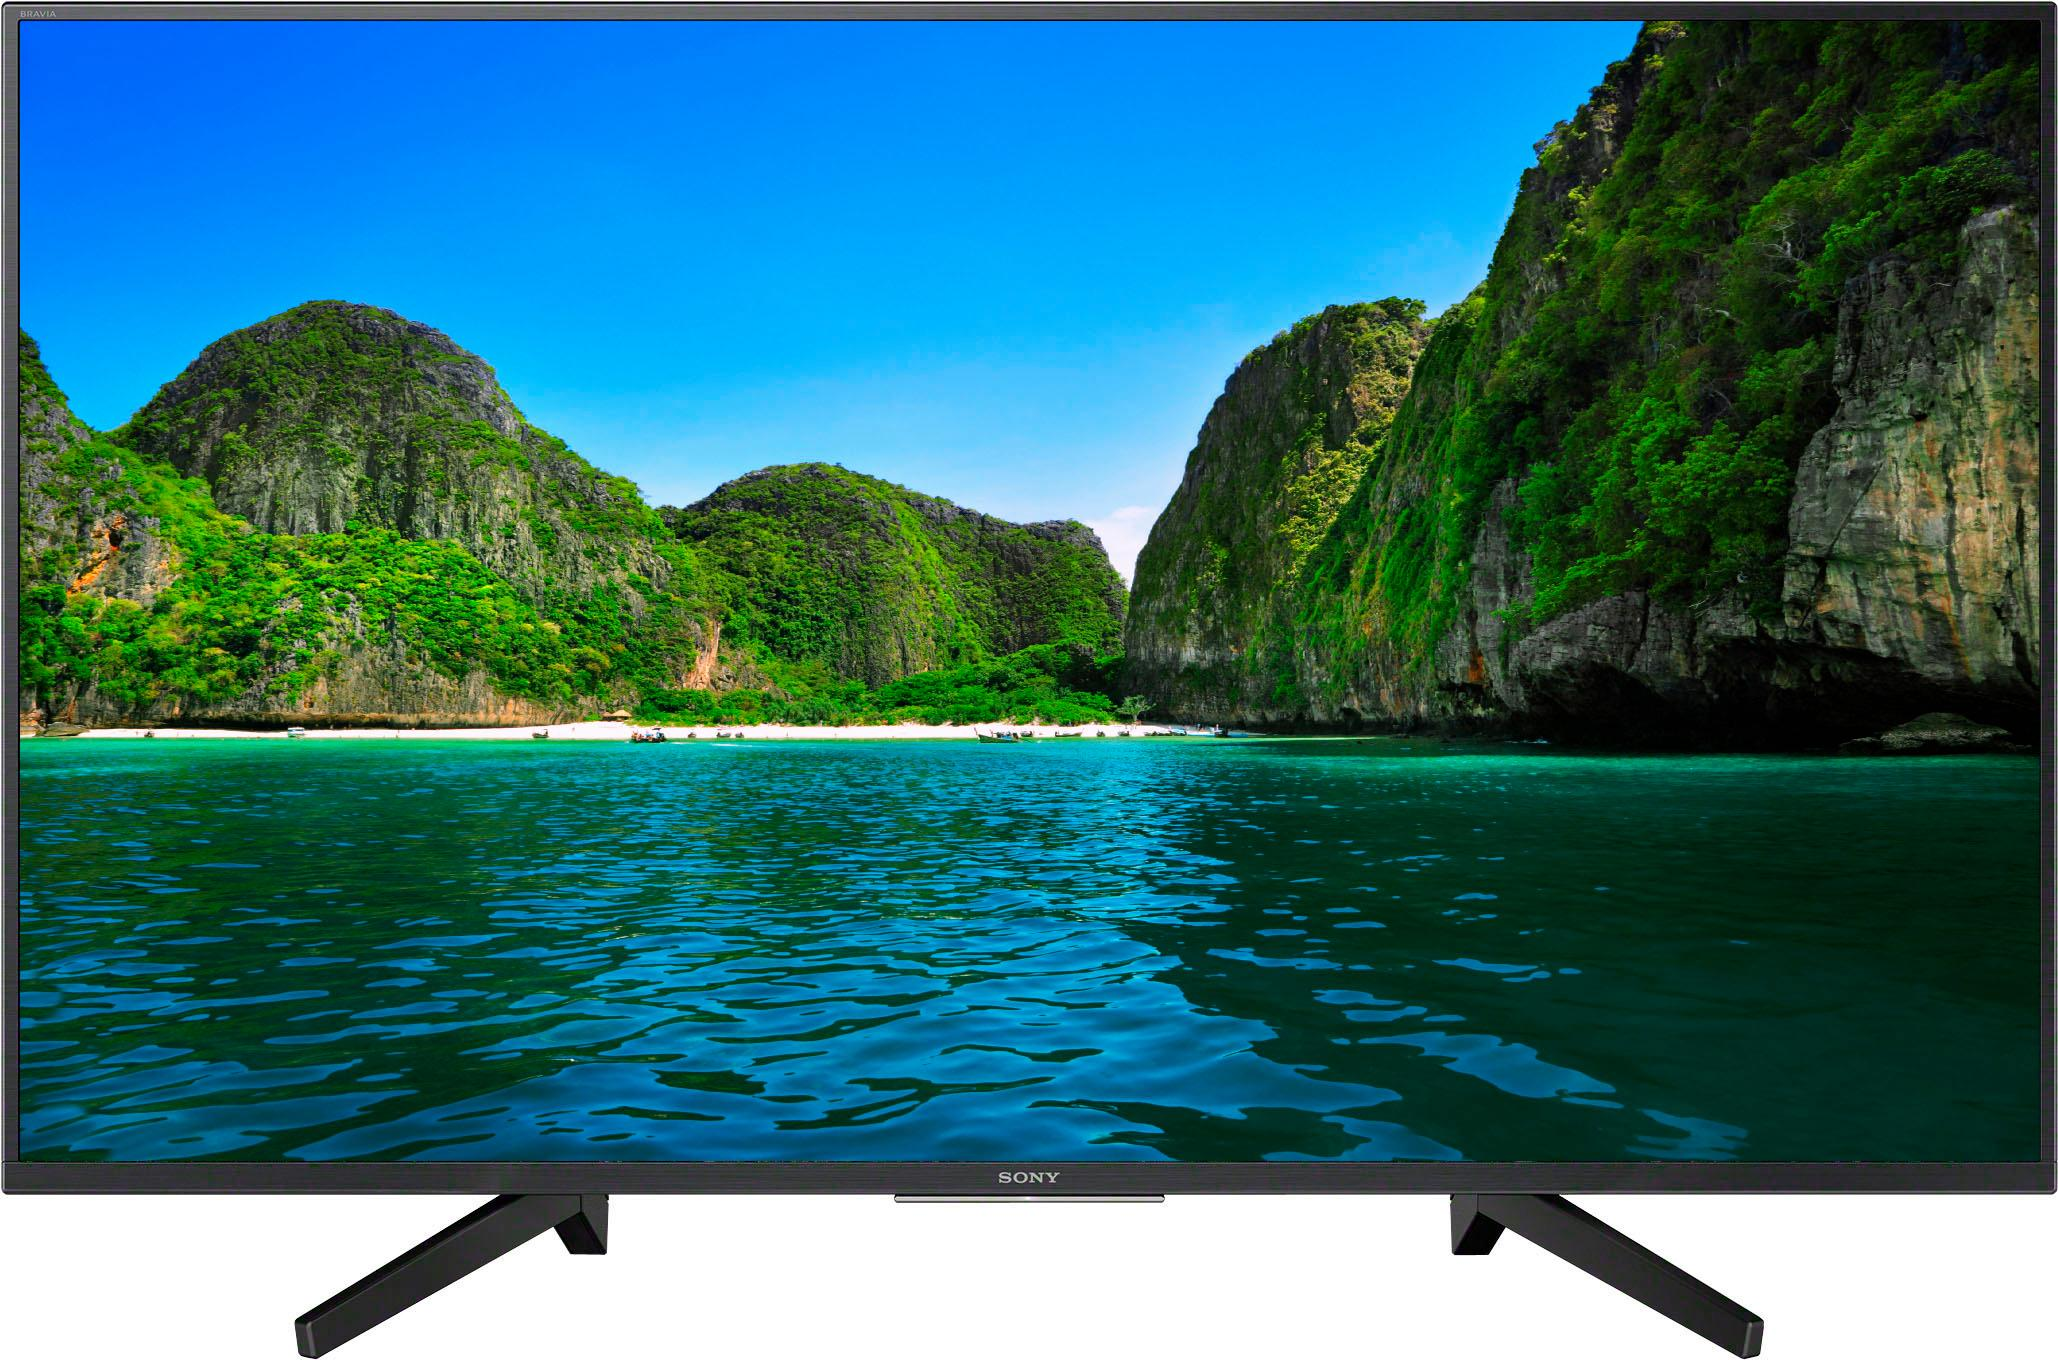 sony kd49xf7004 led fernseher 123 cm 49 zoll 4k. Black Bedroom Furniture Sets. Home Design Ideas